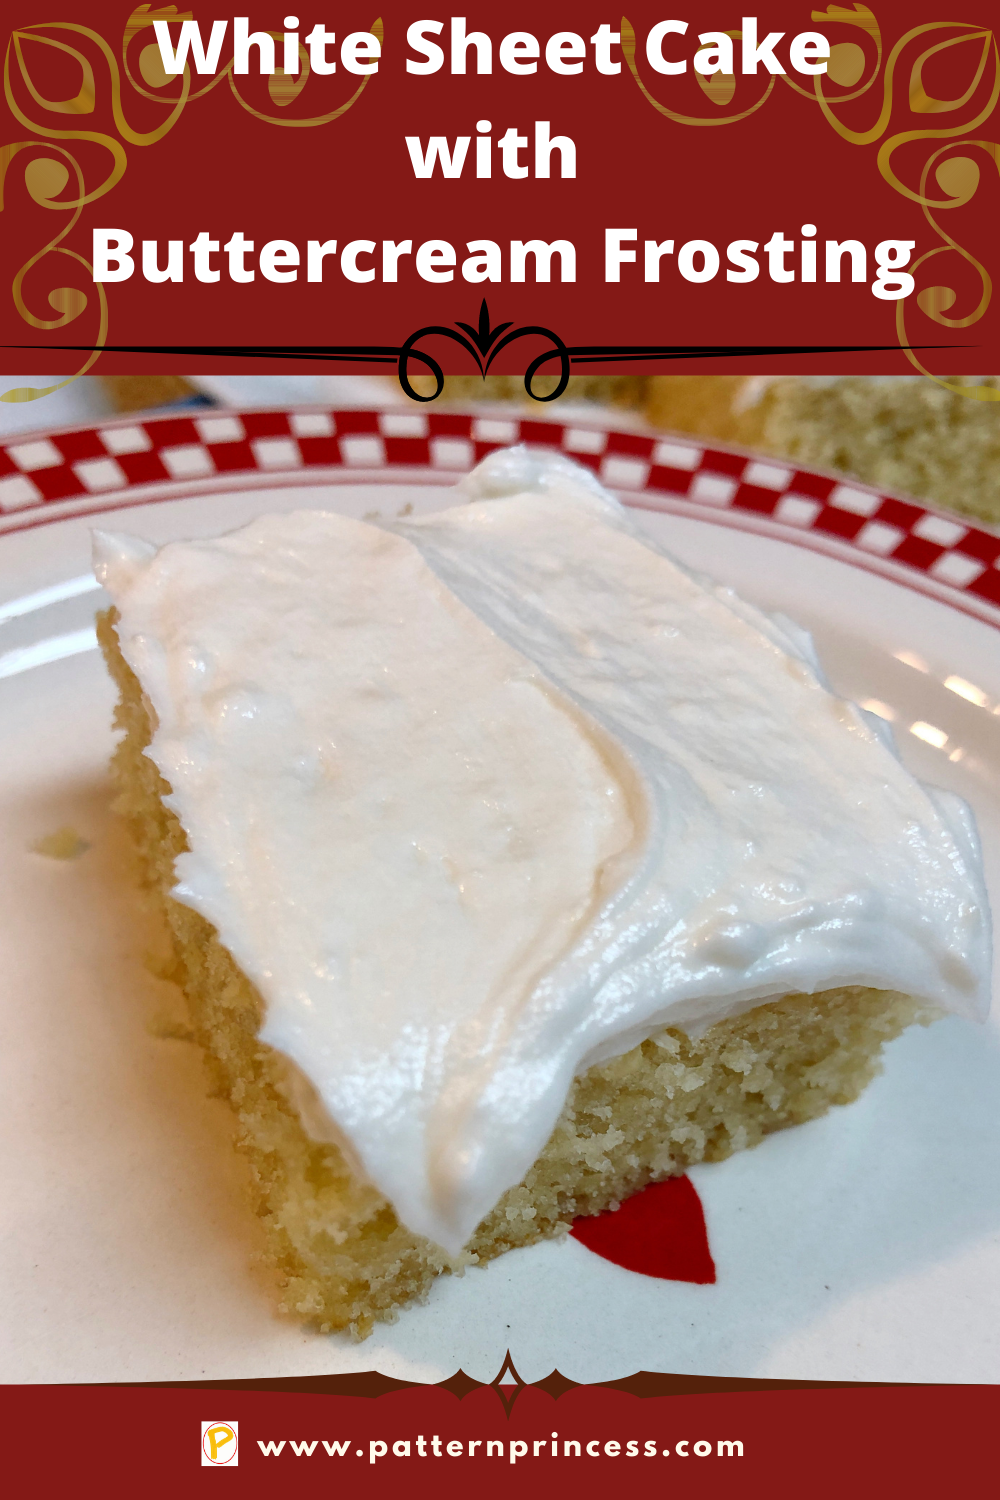 Vanilla Sheet Cake with Buttercream Frosting